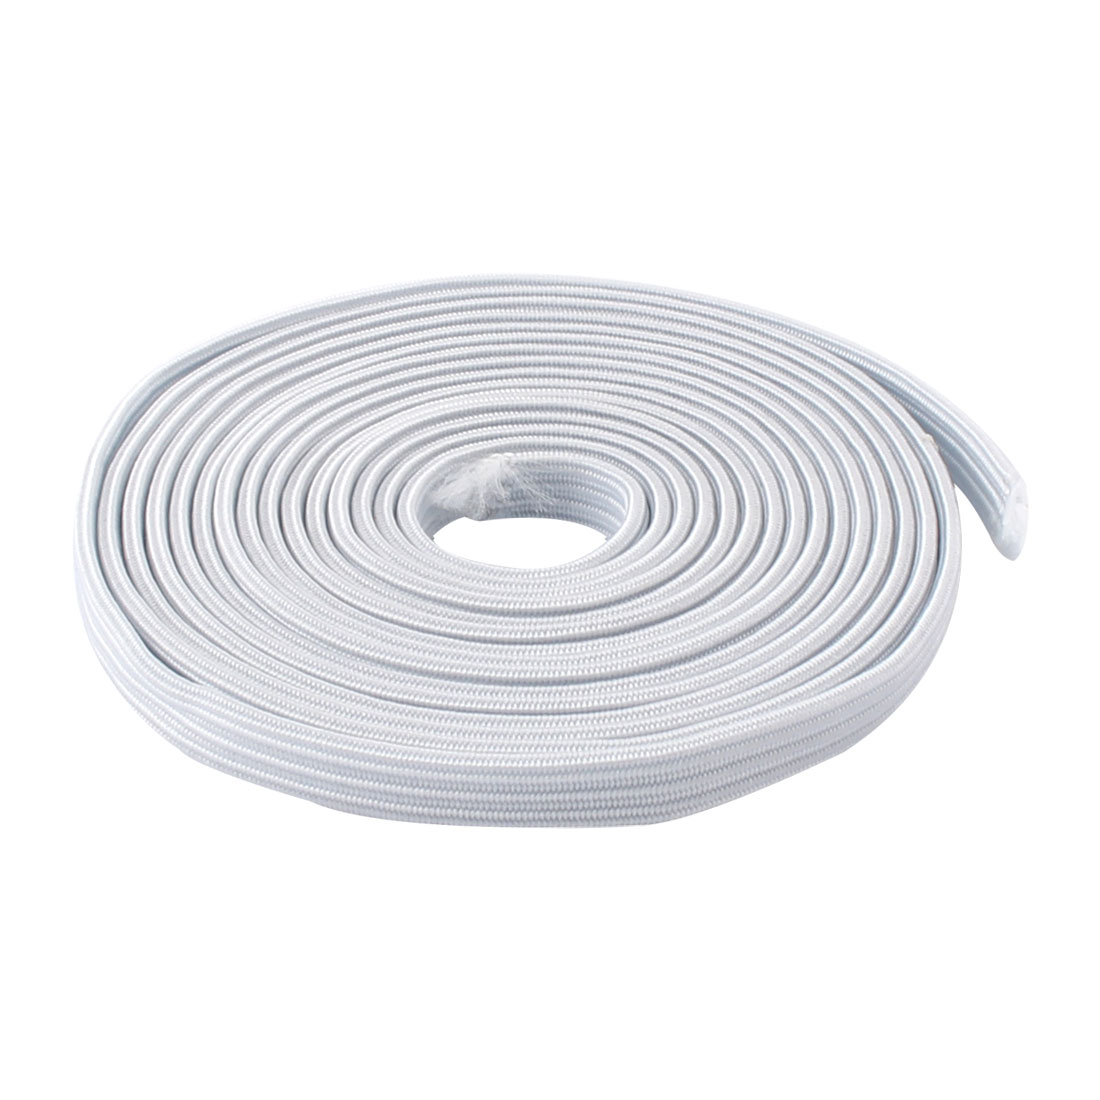 Household Clothing Sewing Knitting Craft Rubber Elastic Band White 9.4ft Length